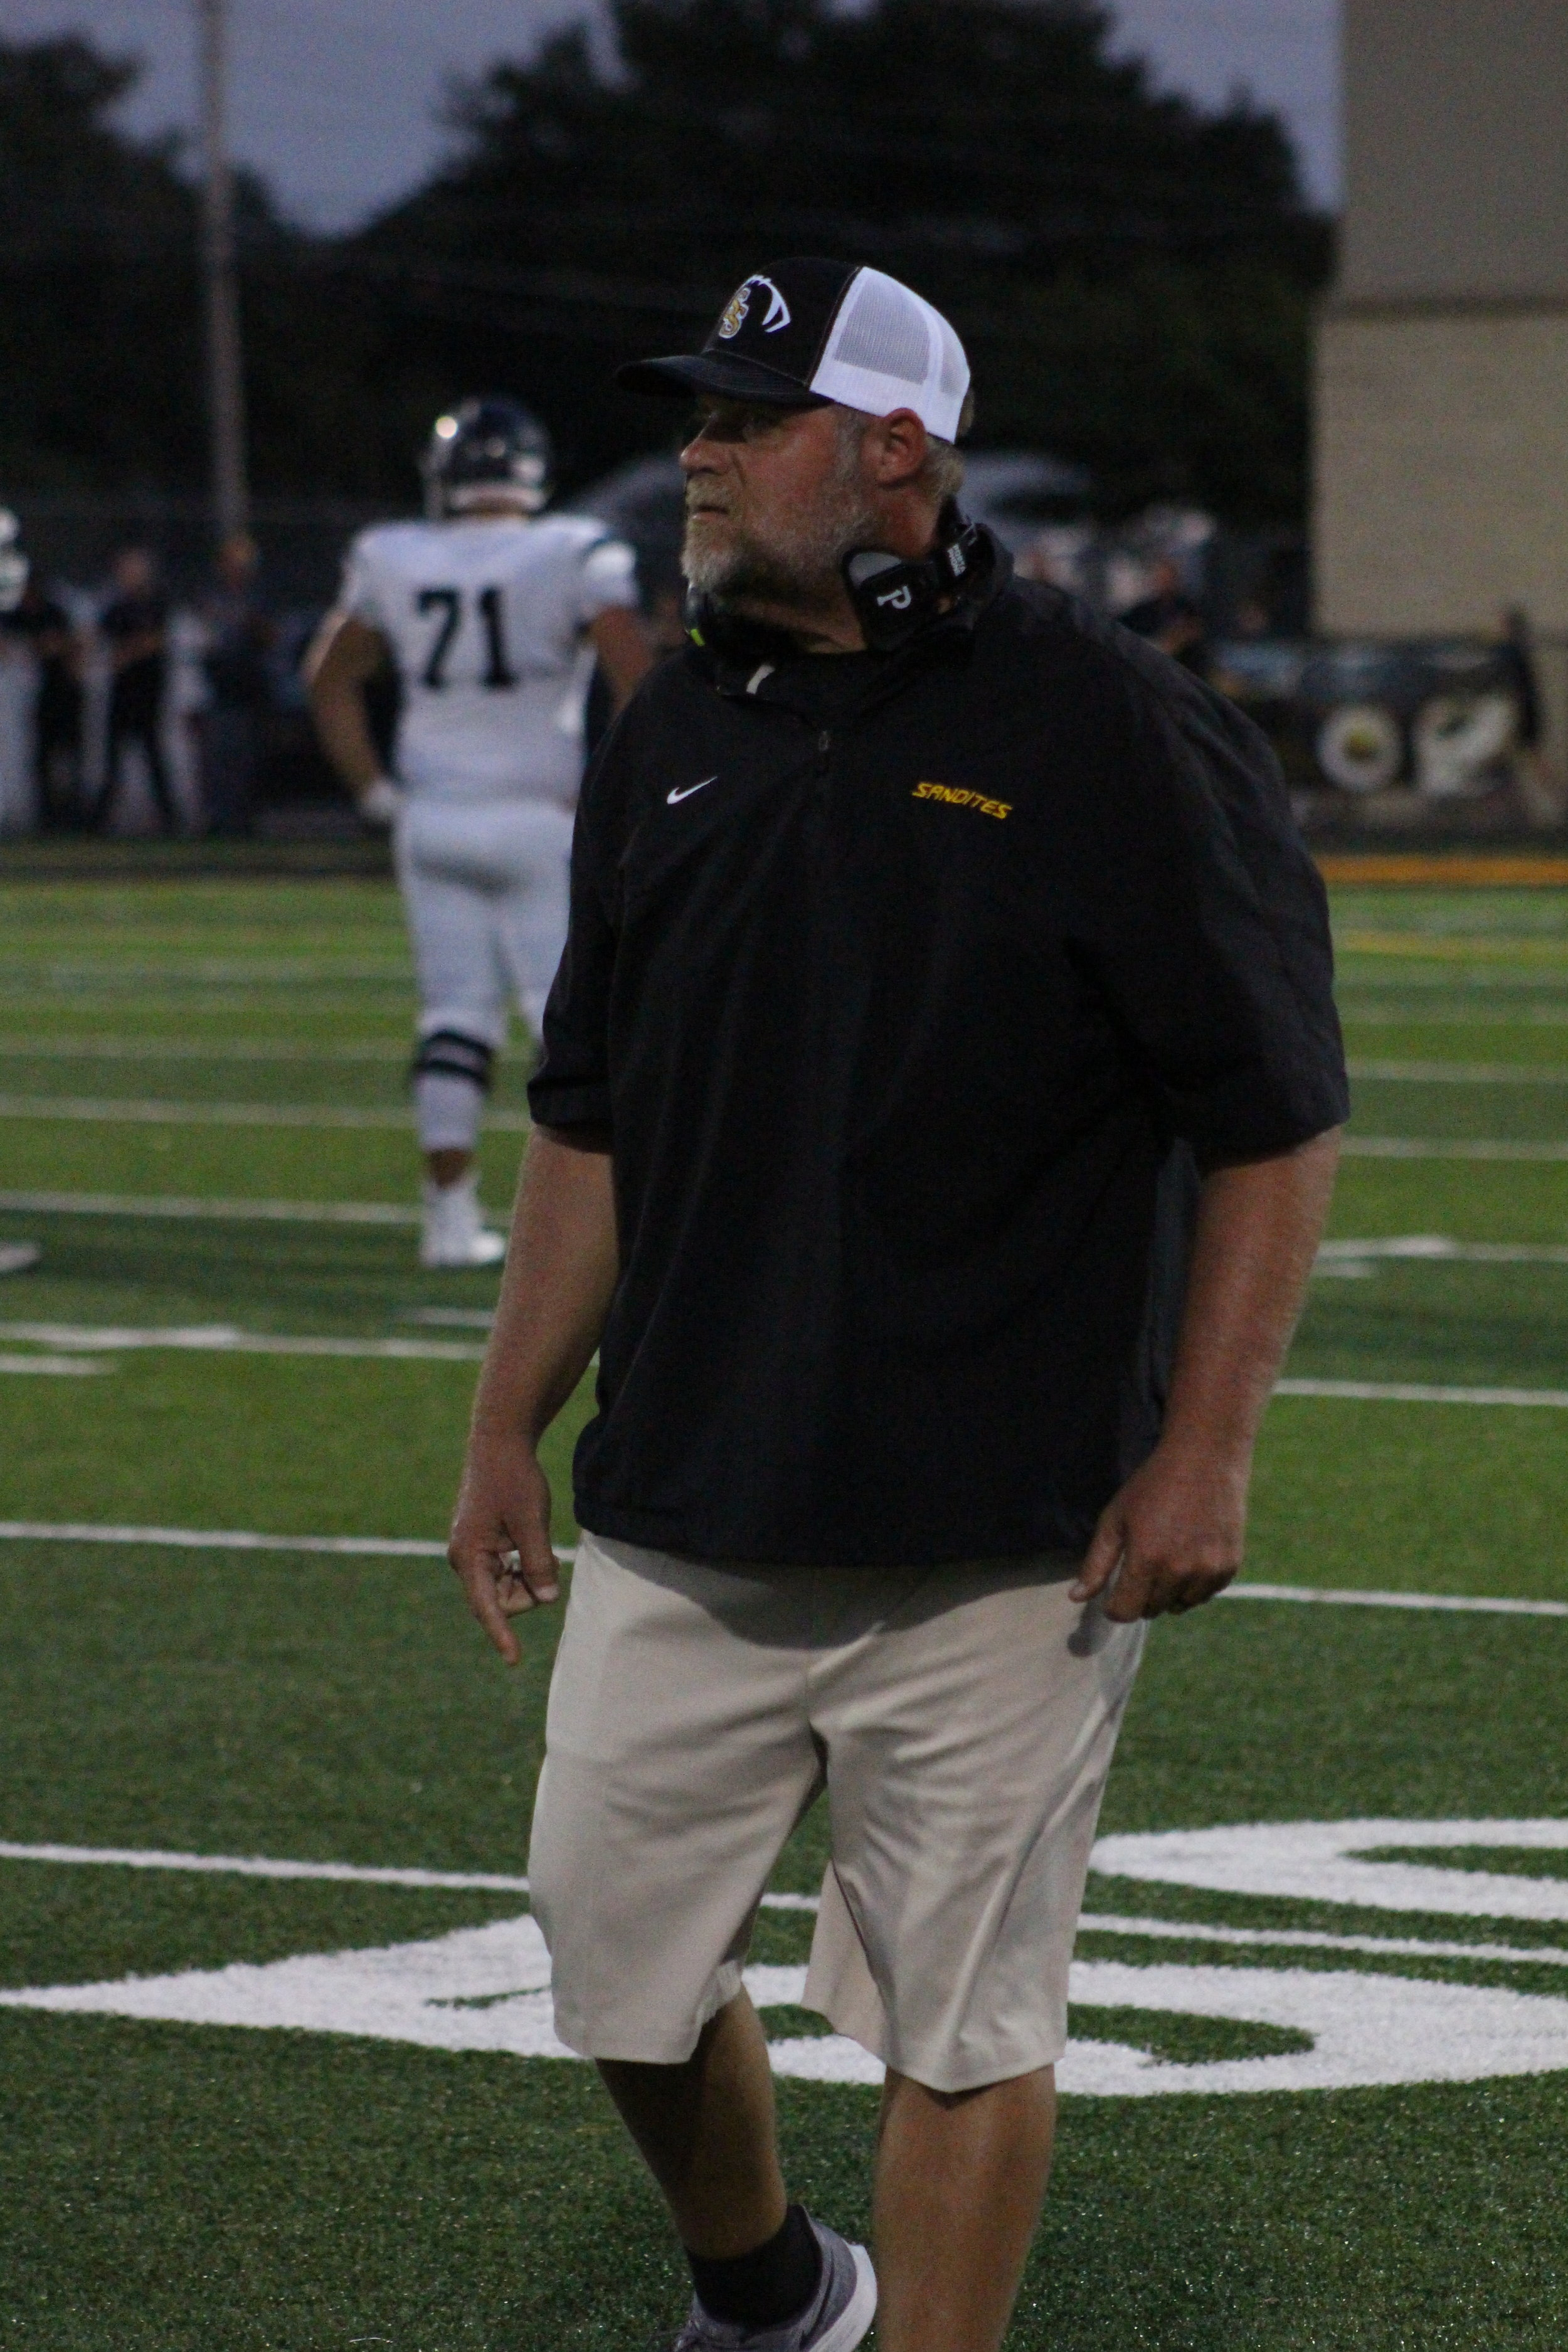 13th-year Head Coach Dustin Kinard improved to 65-69 overall, 42-41 in district action, and 34-28 at home with the 21-19 win over Shawnee. Kinard battled pancreatic cancer last year but announced he was cancer-free prior to the 2019 season.